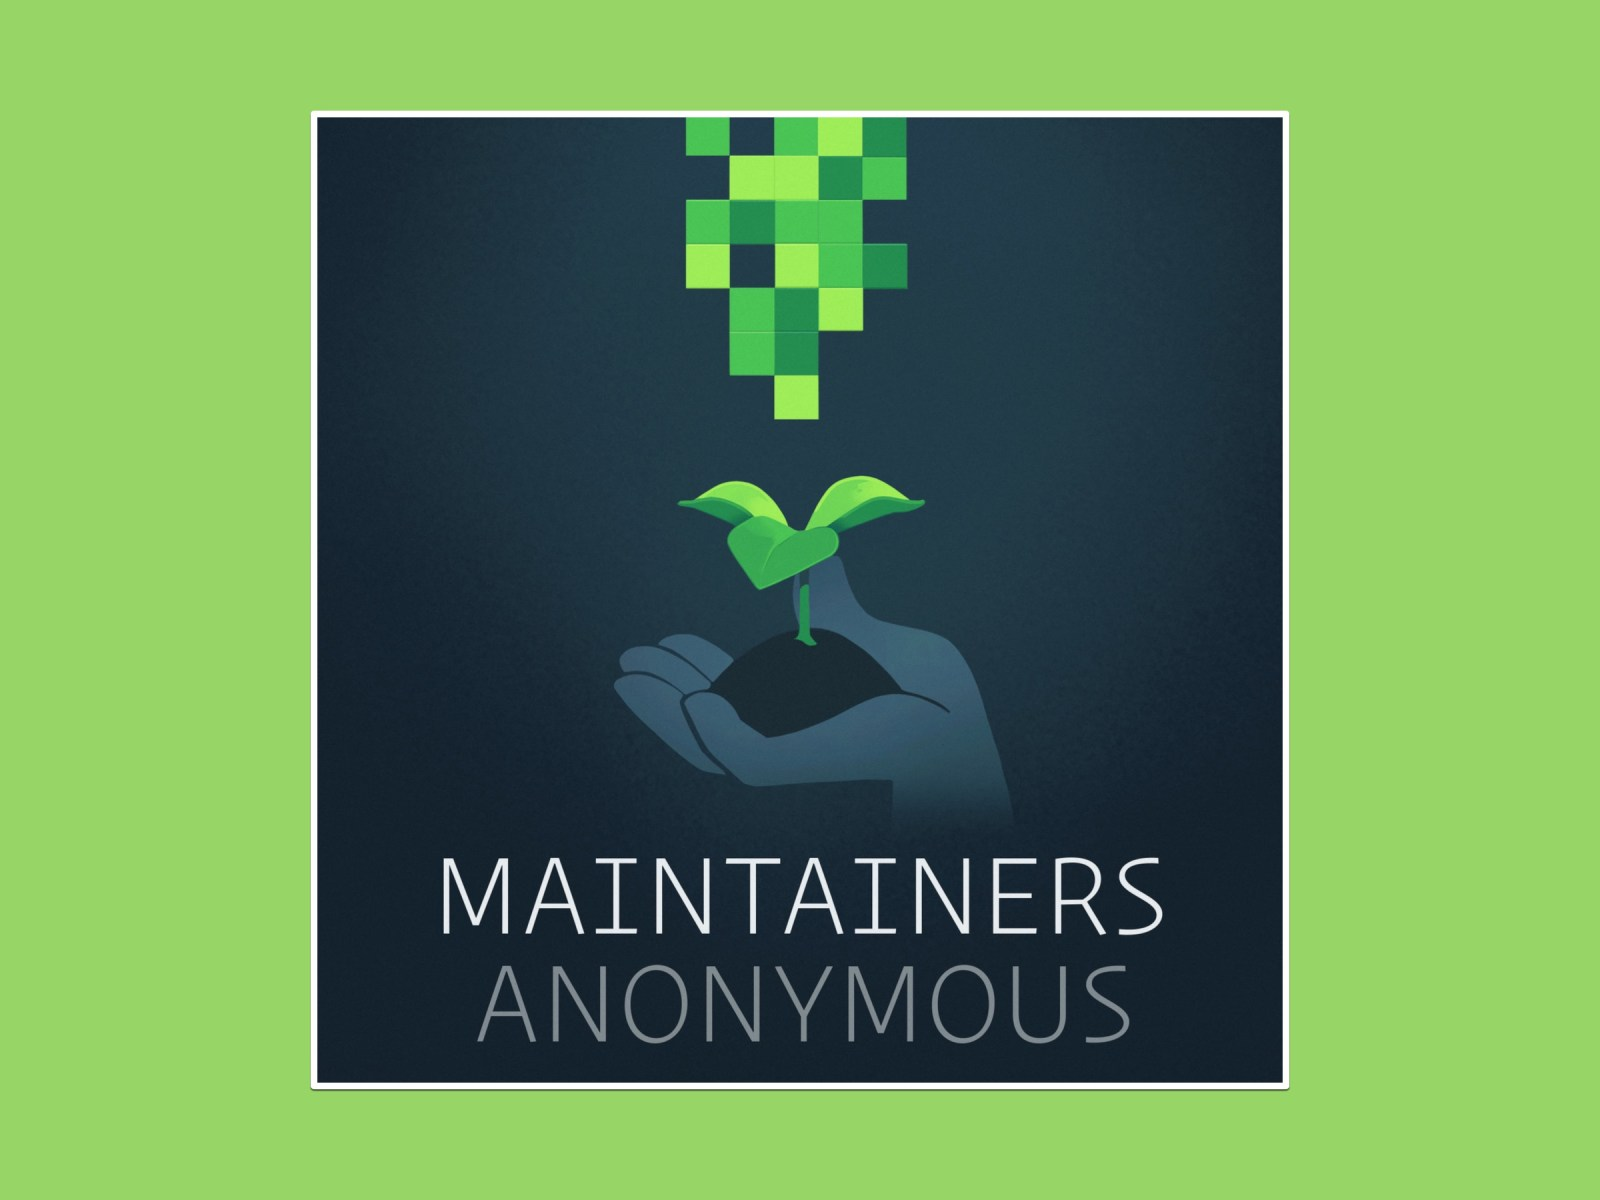 Maintainers Anonymous